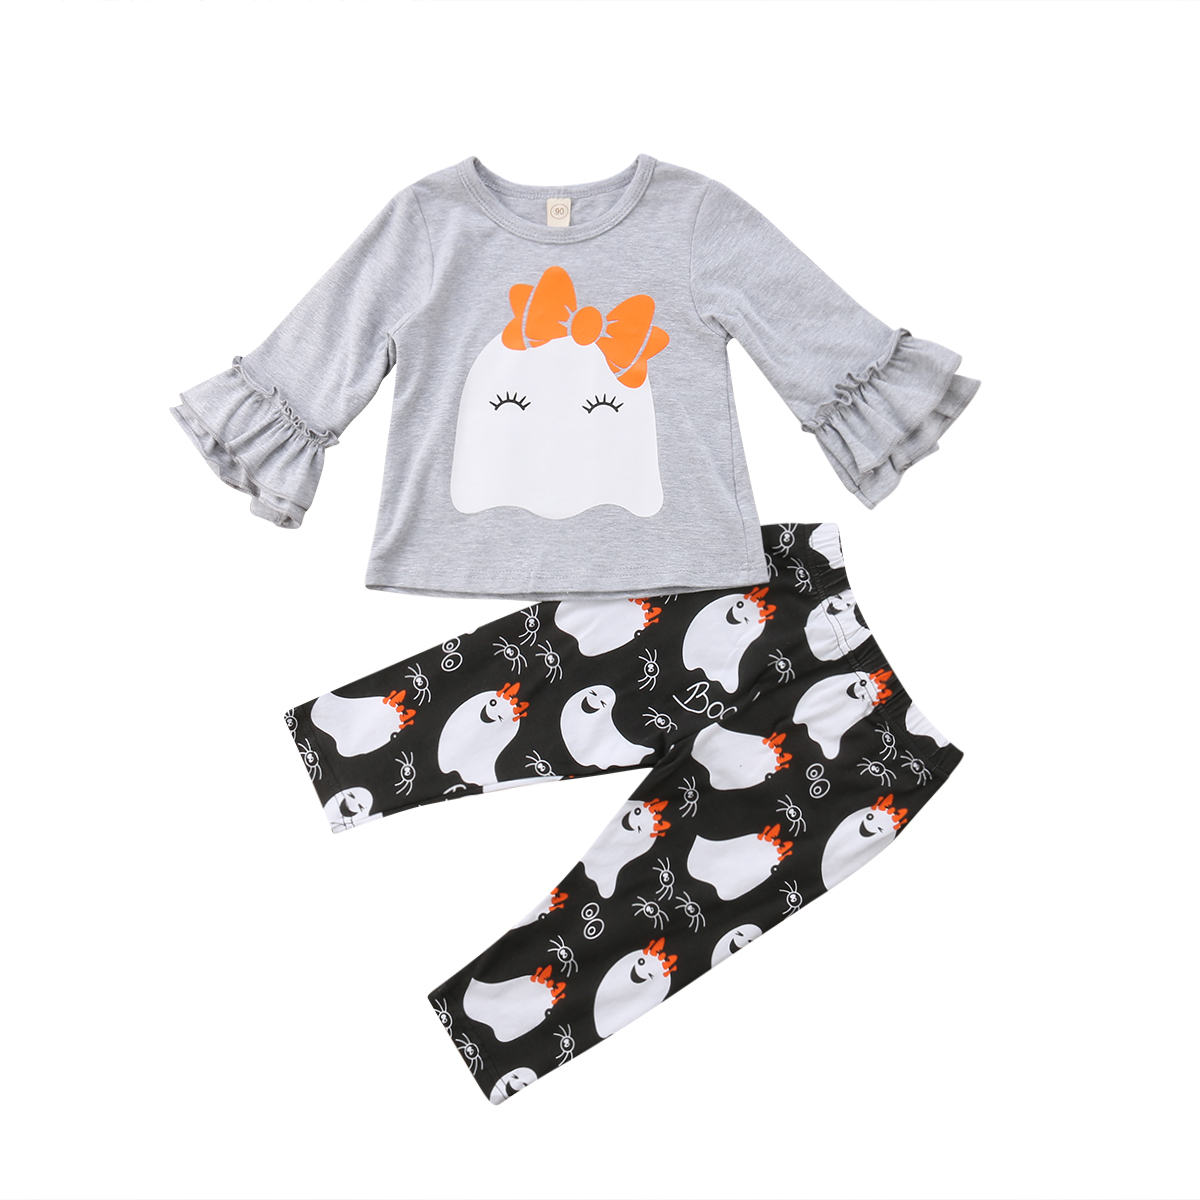 2Pcs Halloween Kids Baby Girls Ghost Tops T-shirt Long Pants Leggings Outfits Clothes Set